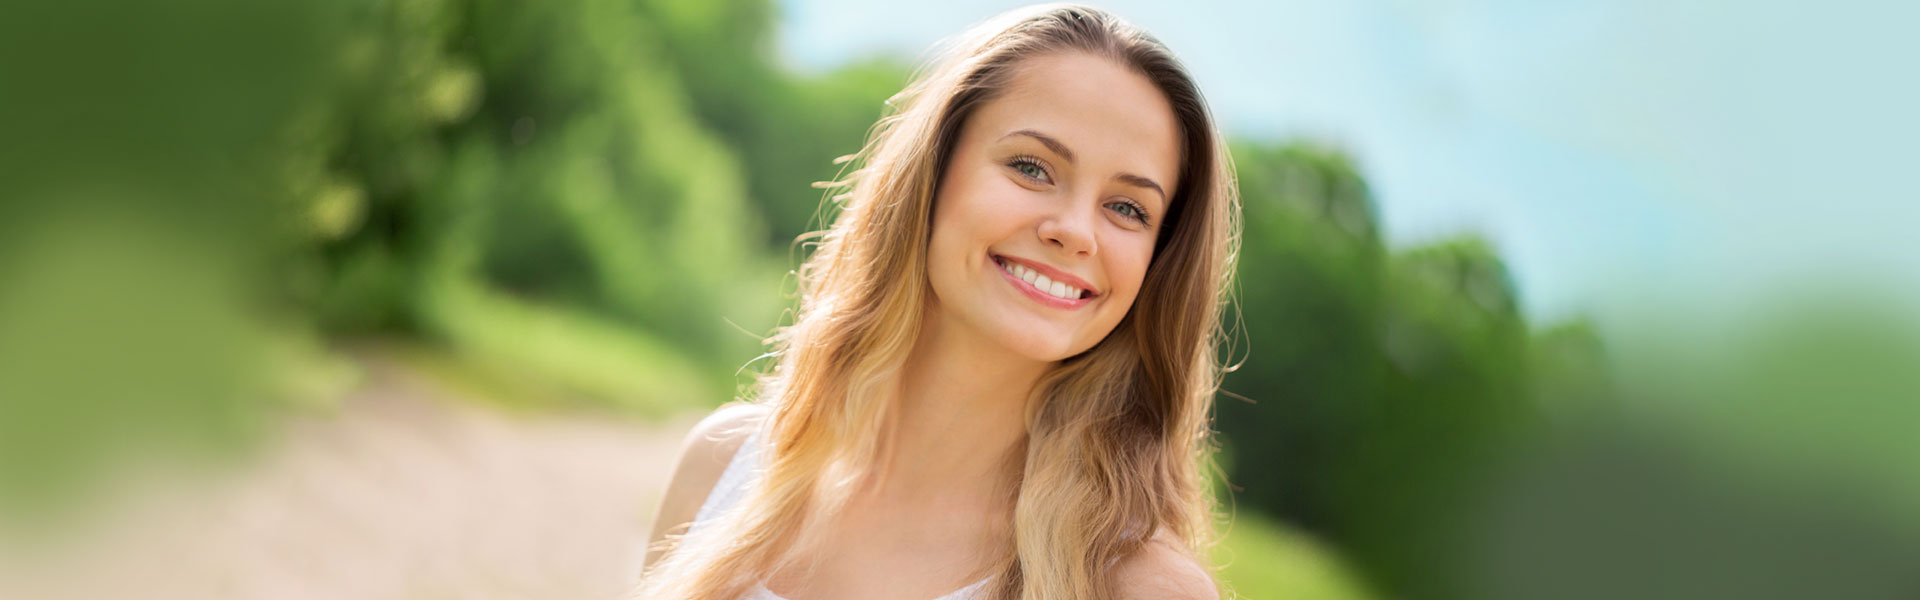 Dental Fillings: What Should You Expect?